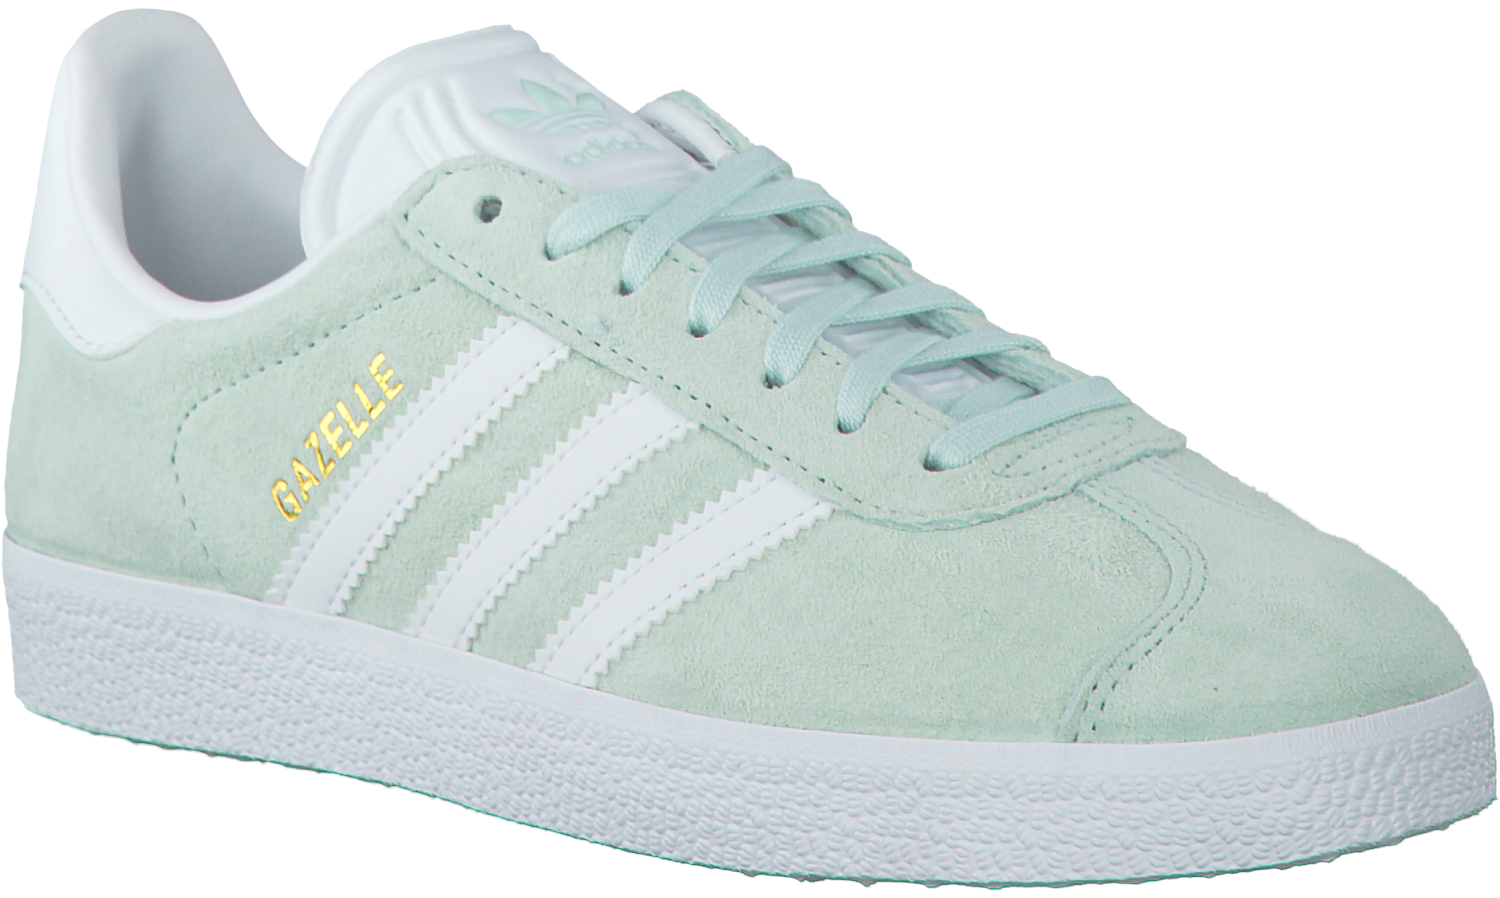 a876c195e86 Groene ADIDAS Sneakers GAZELLE DAMES. ADIDAS. -70%. Previous